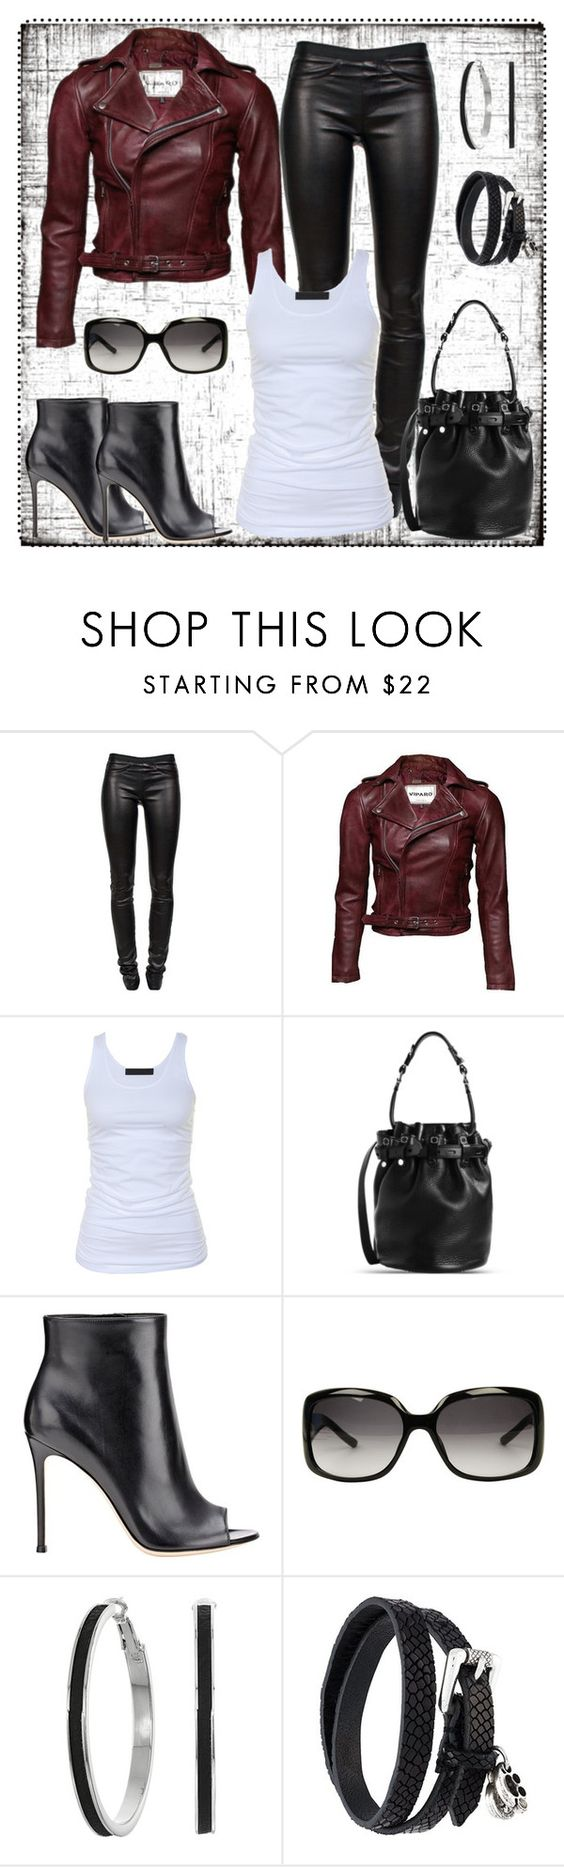 """""""Untitled #1124"""" by gallant81 ❤ liked on Polyvore featuring Helmut Lang, Tusnelda Bloch, Alexander Wang, Gianvito Rossi, Gucci, GUESS and Diesel"""